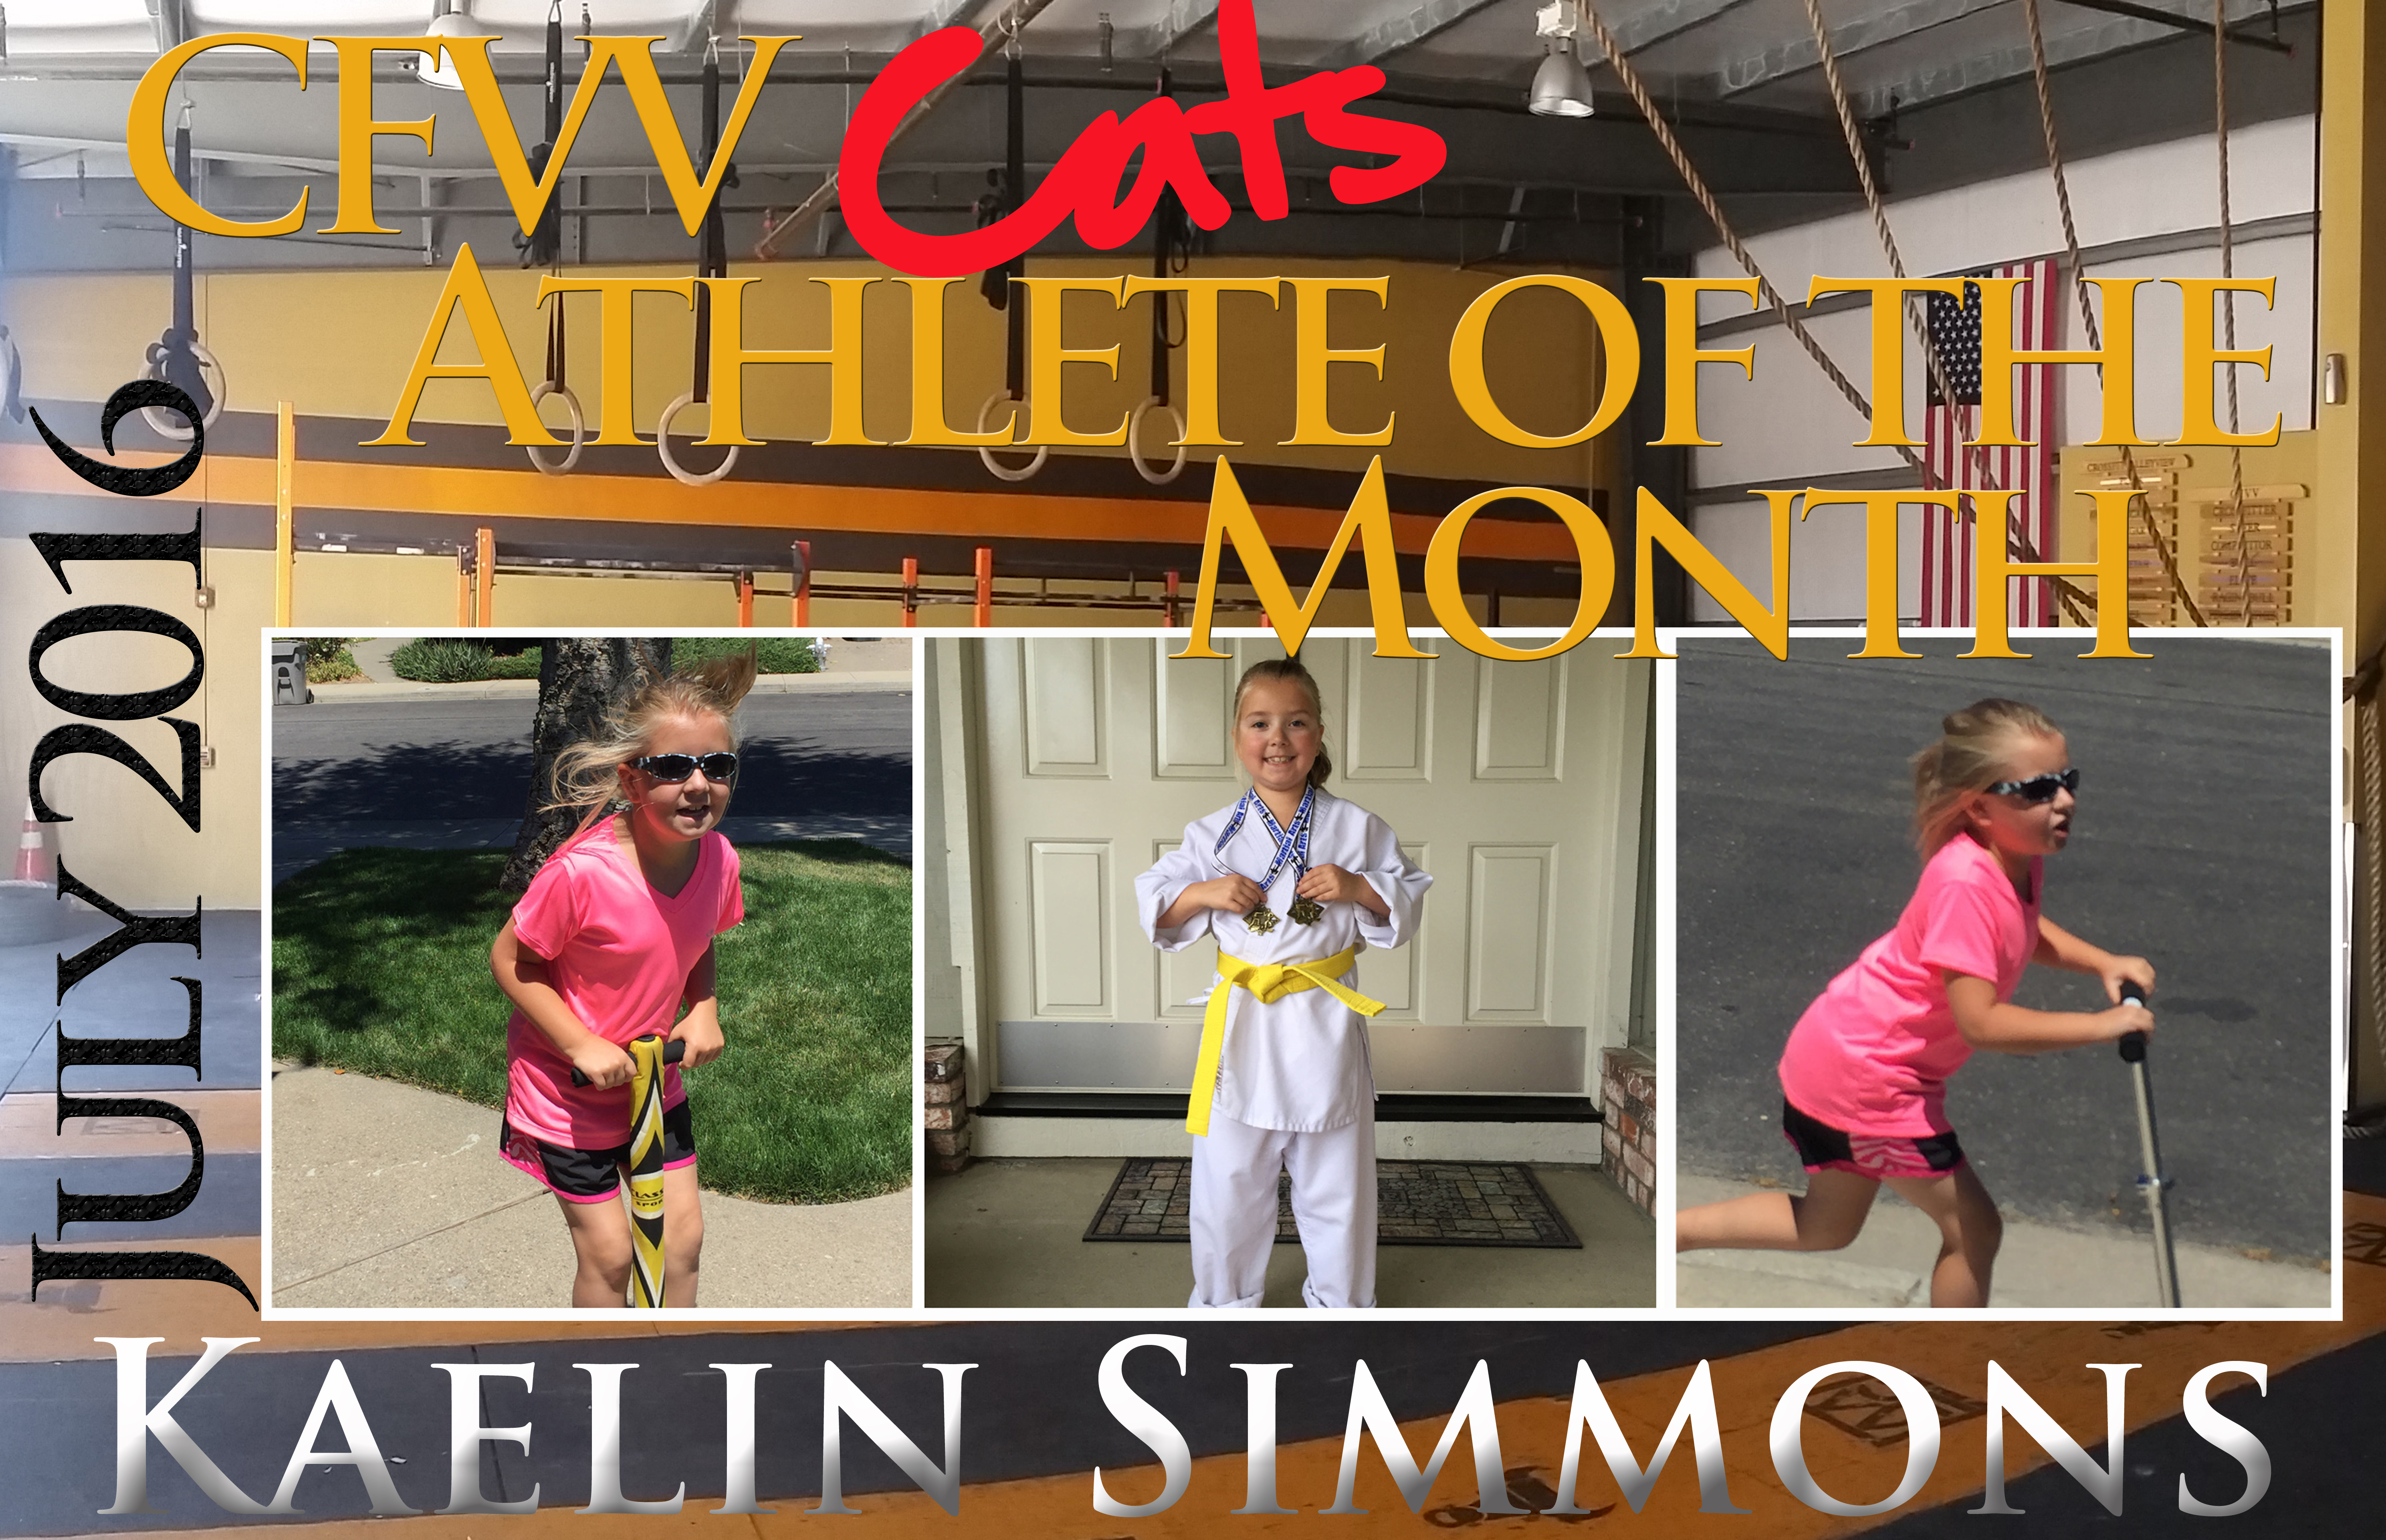 Athlete of the Month CFVV Kaelin